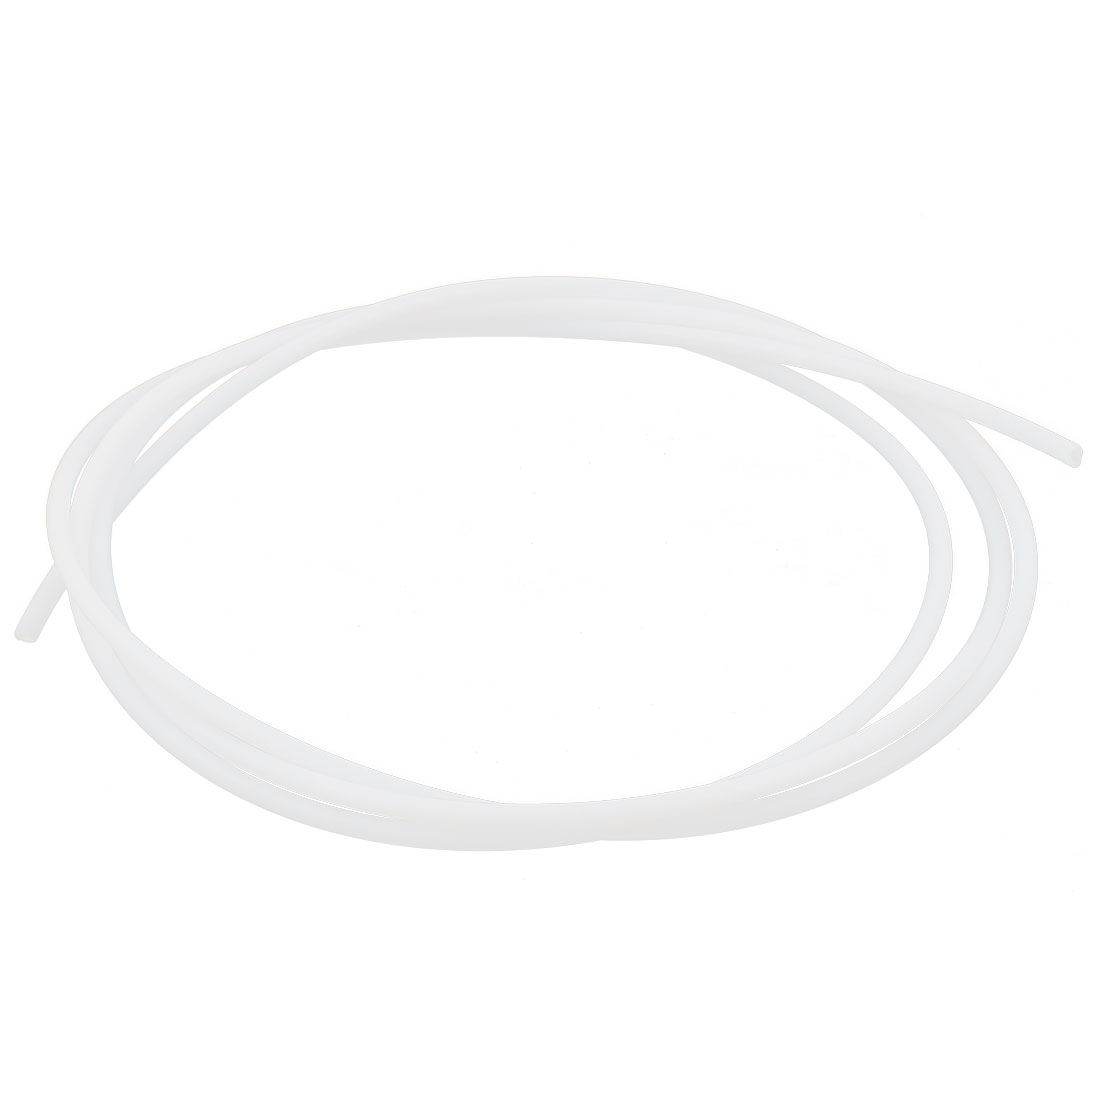 2M Length 6mm ID 8mm OD PTFE Tubing Tube Pipe for 3D Printer RepRap